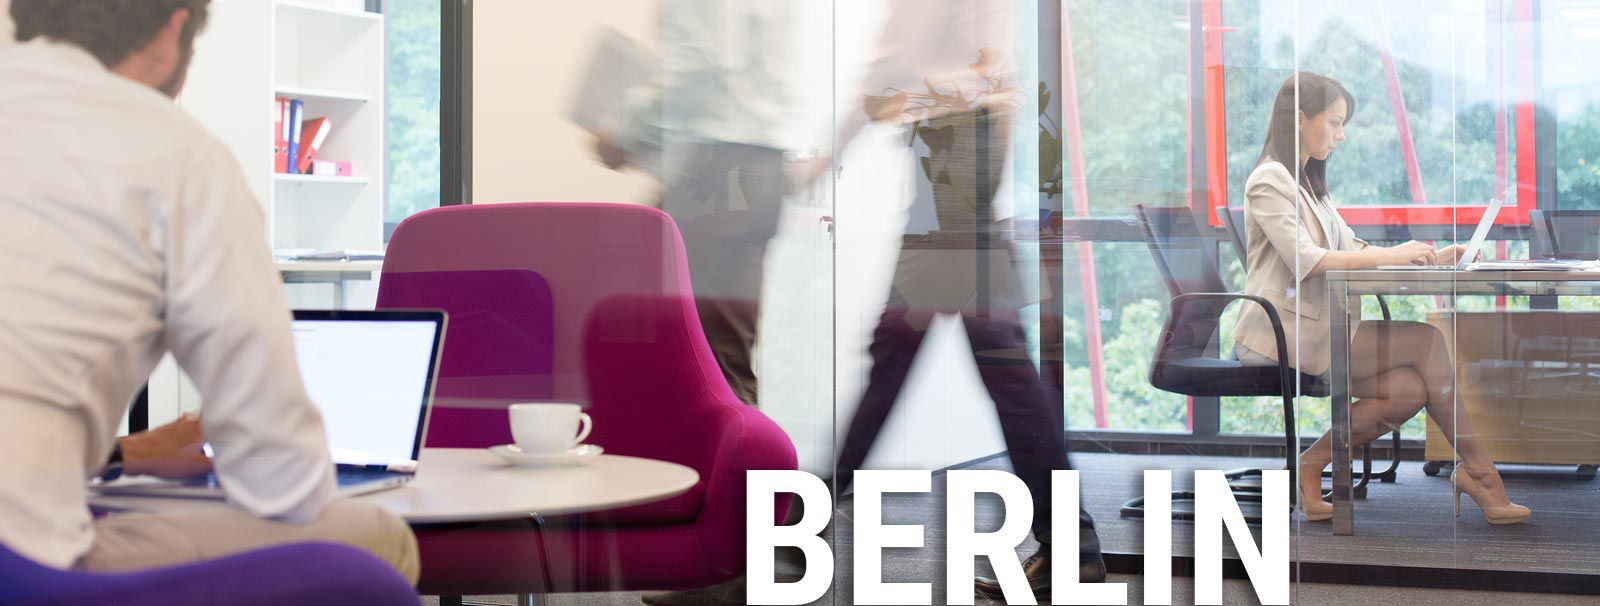 Berlin cannabis industry investment opportunities